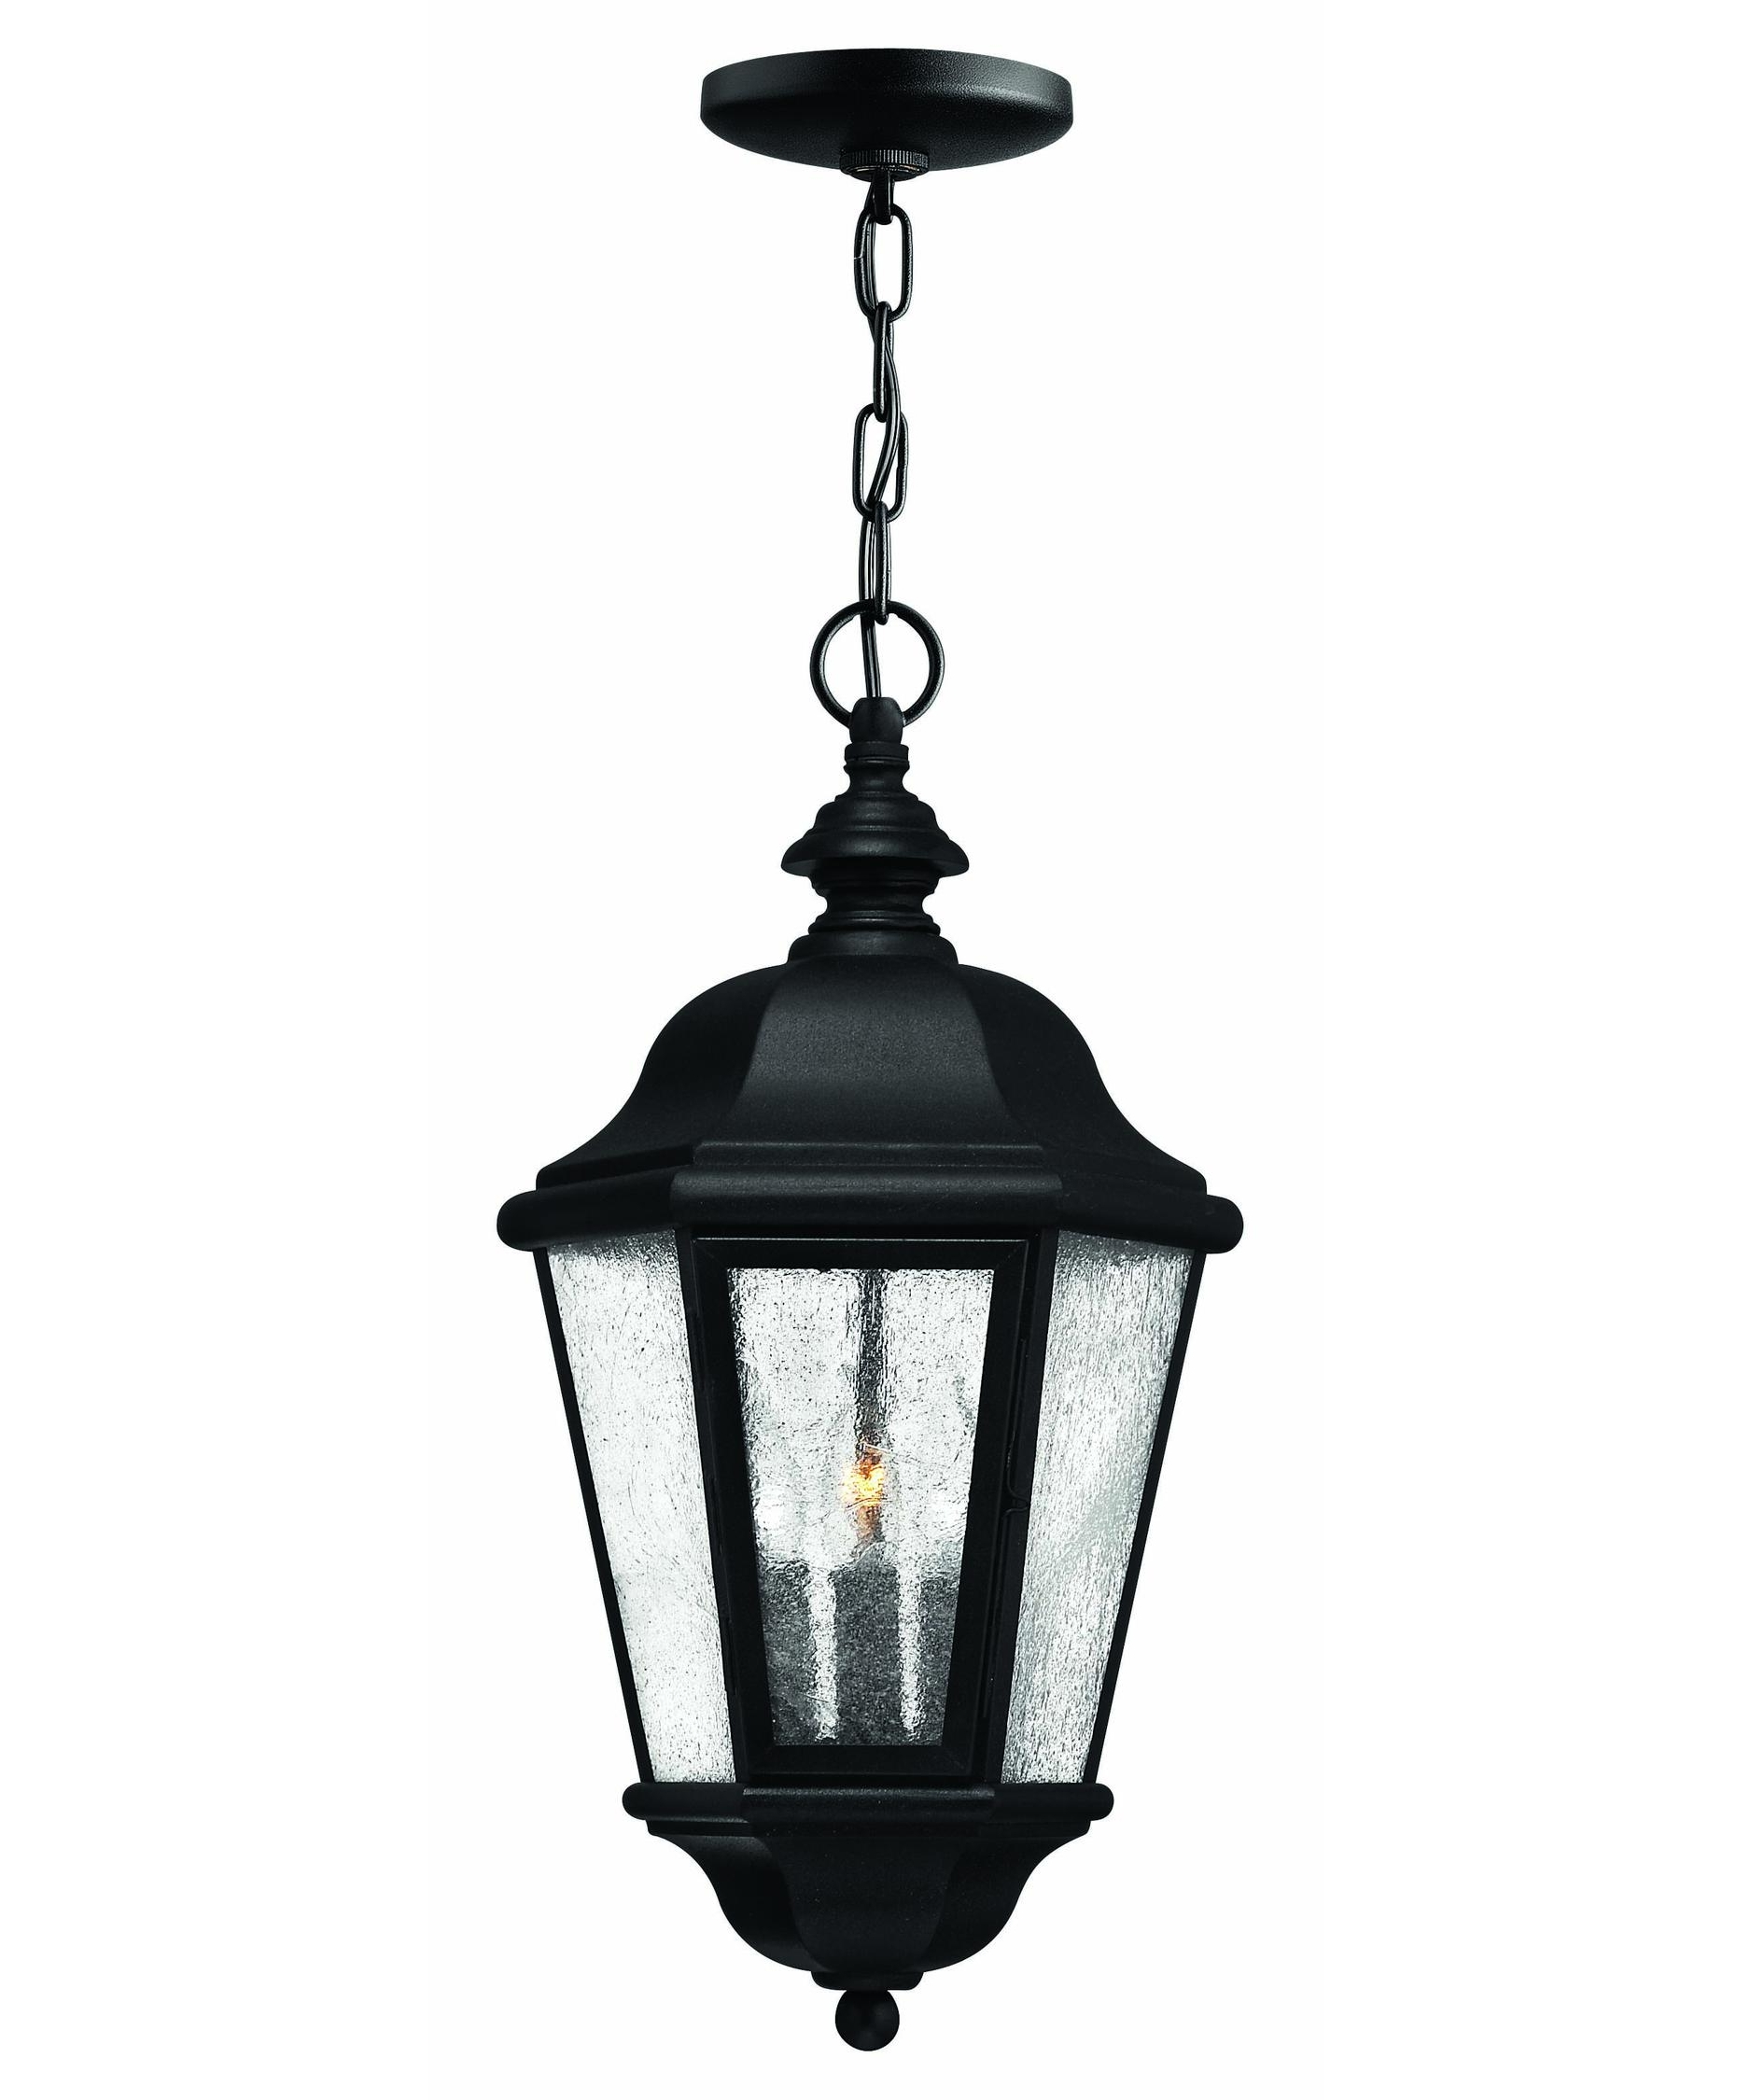 Hinkley Outdoor Ceiling Lights In Well Known Hinkley Lighting 1672 Edgewater 10 Inch Wide 3 Light Outdoor Hanging (View 2 of 20)